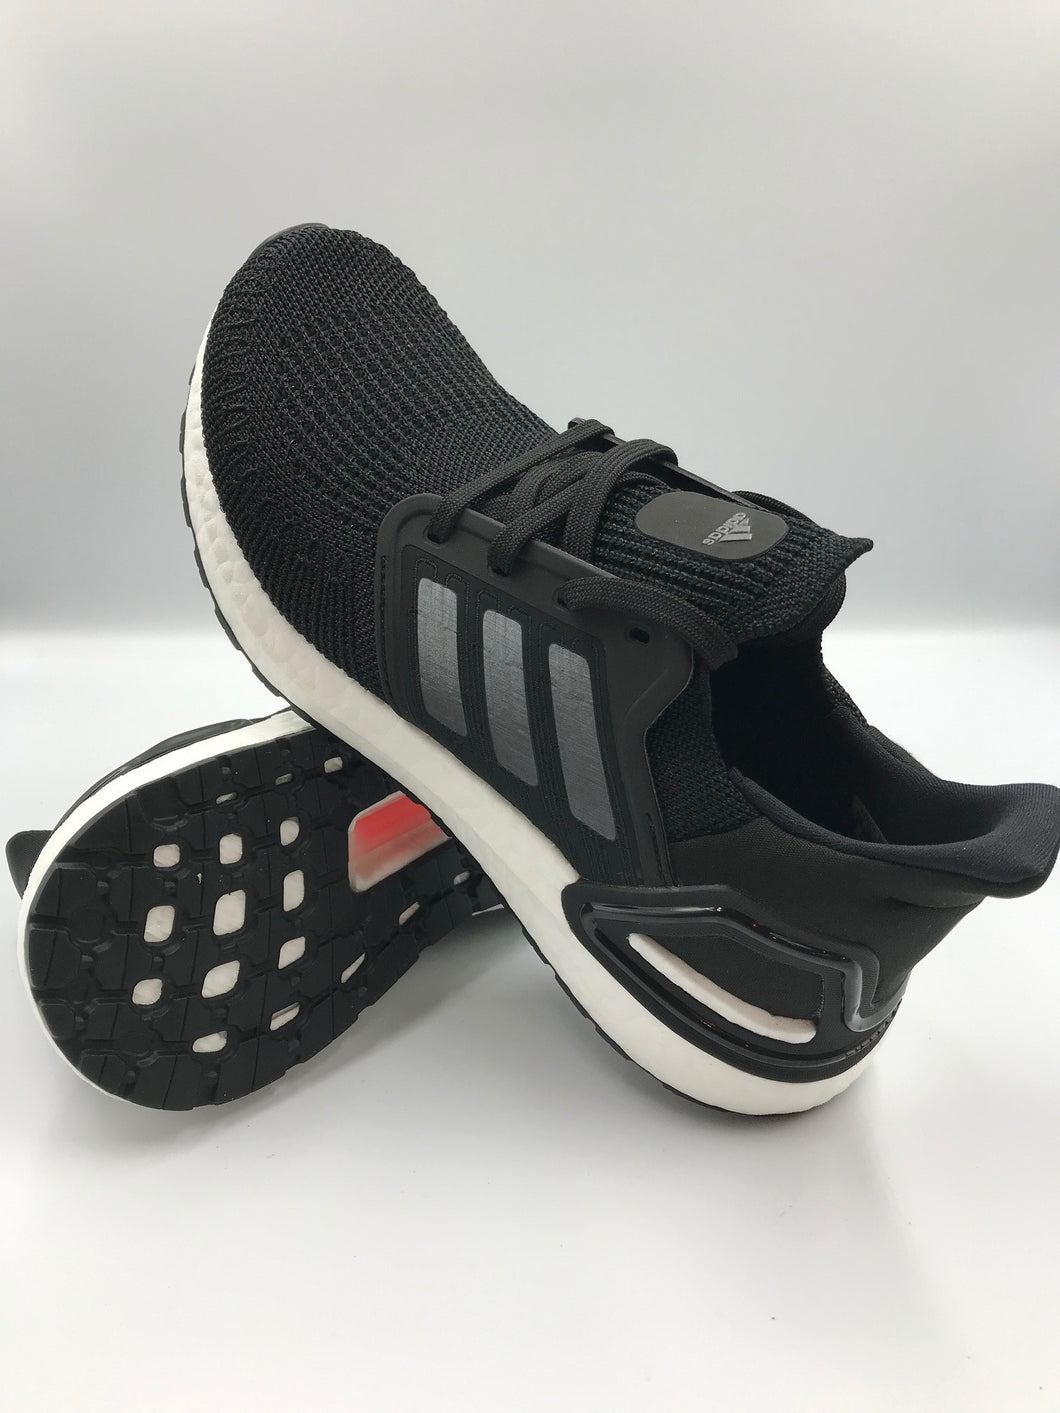 Intersport: Adidas dame sneakers